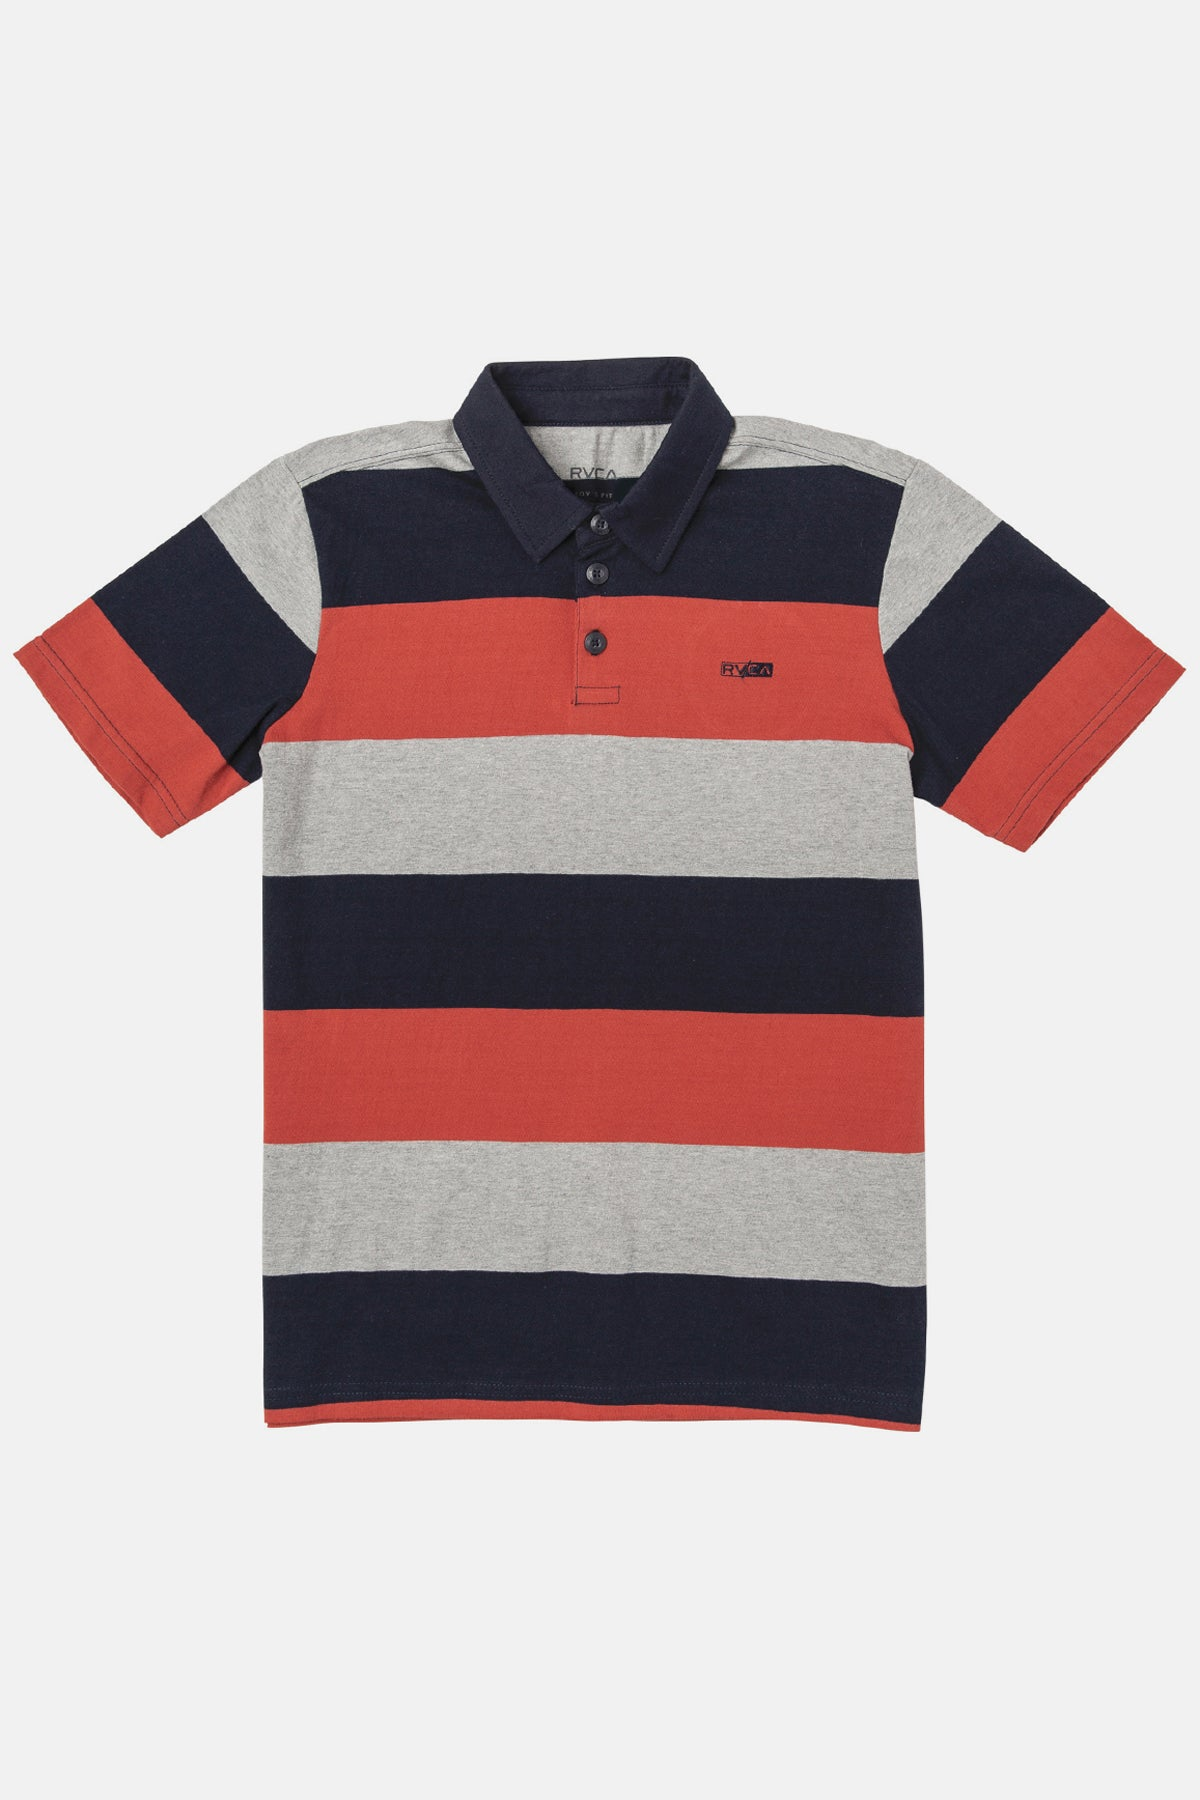 RVCA Cantera Stripe Boys Polo Shirt